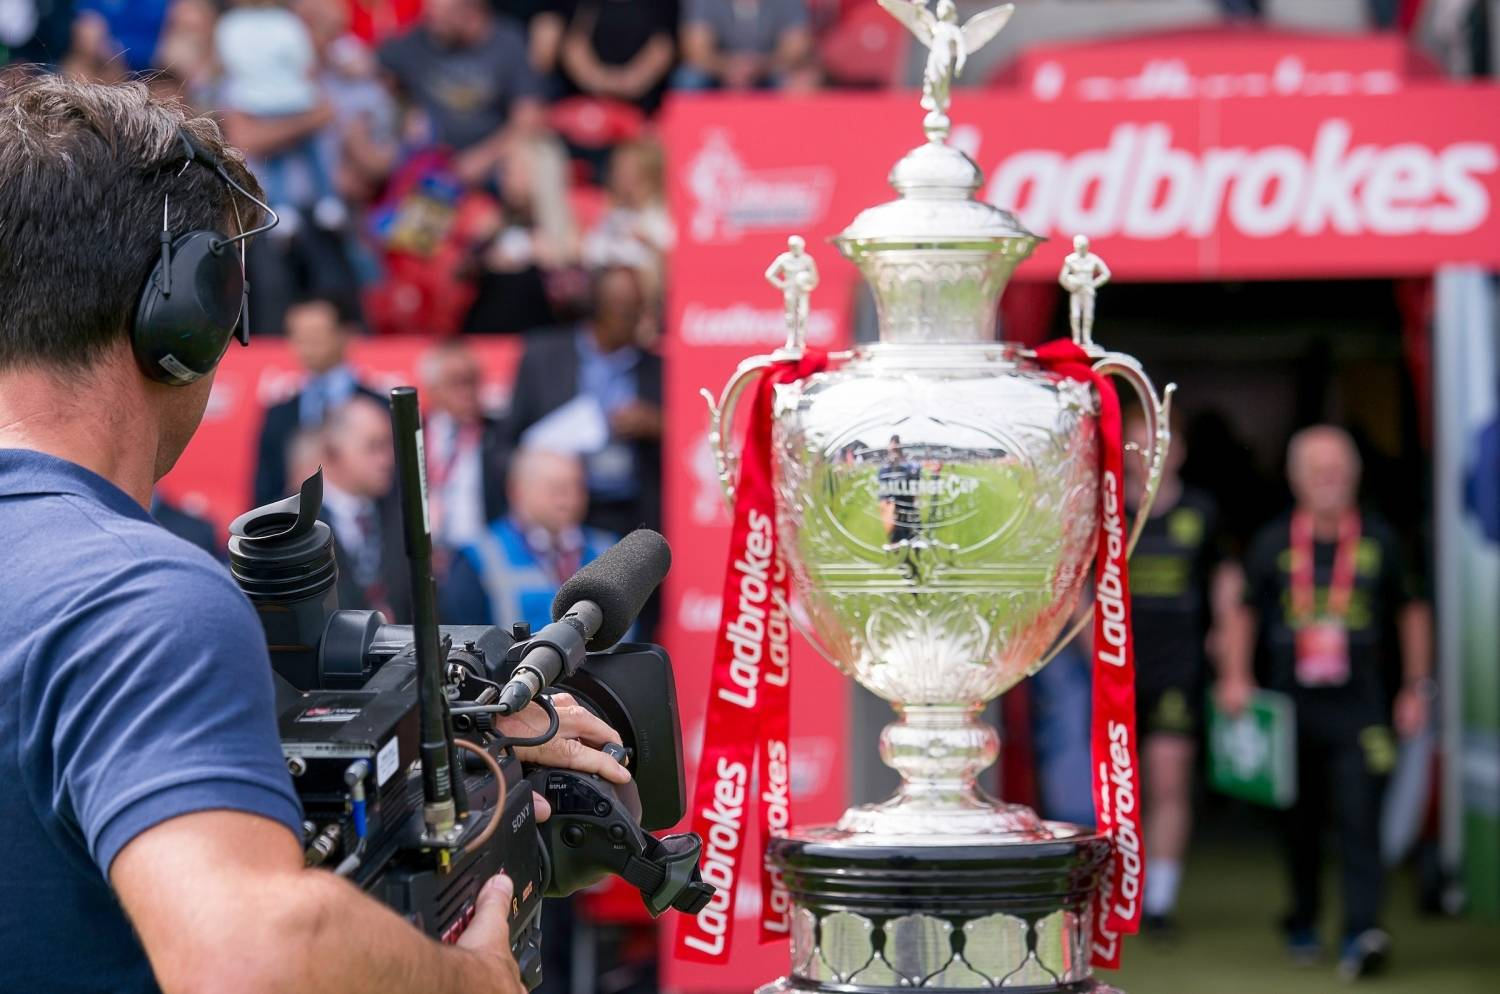 Second round fixture confirmed for BBC Sport stream